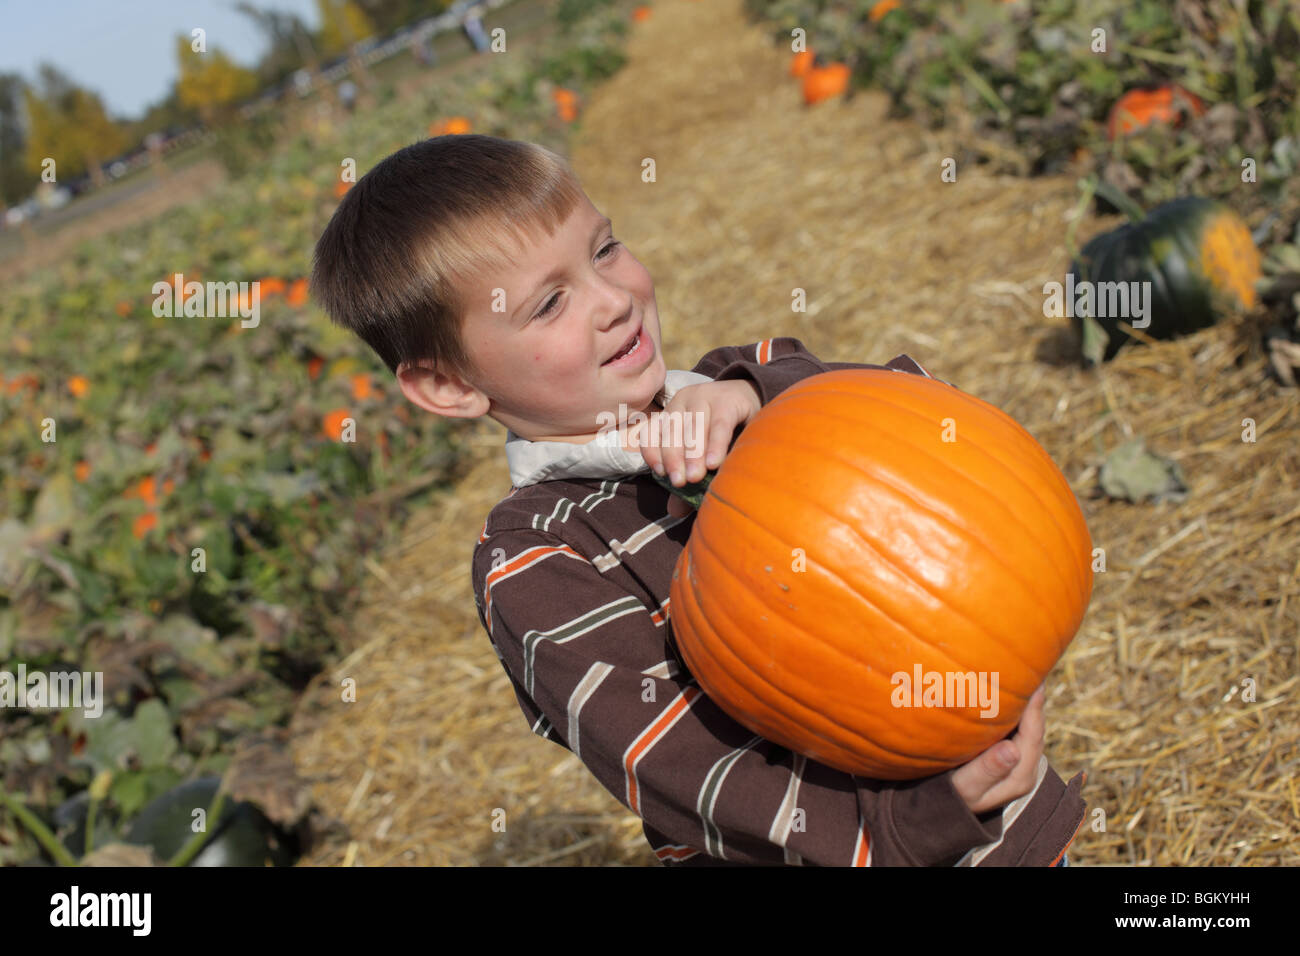 Young boy holding up pumpkin at pumpkin patch - Stock Image